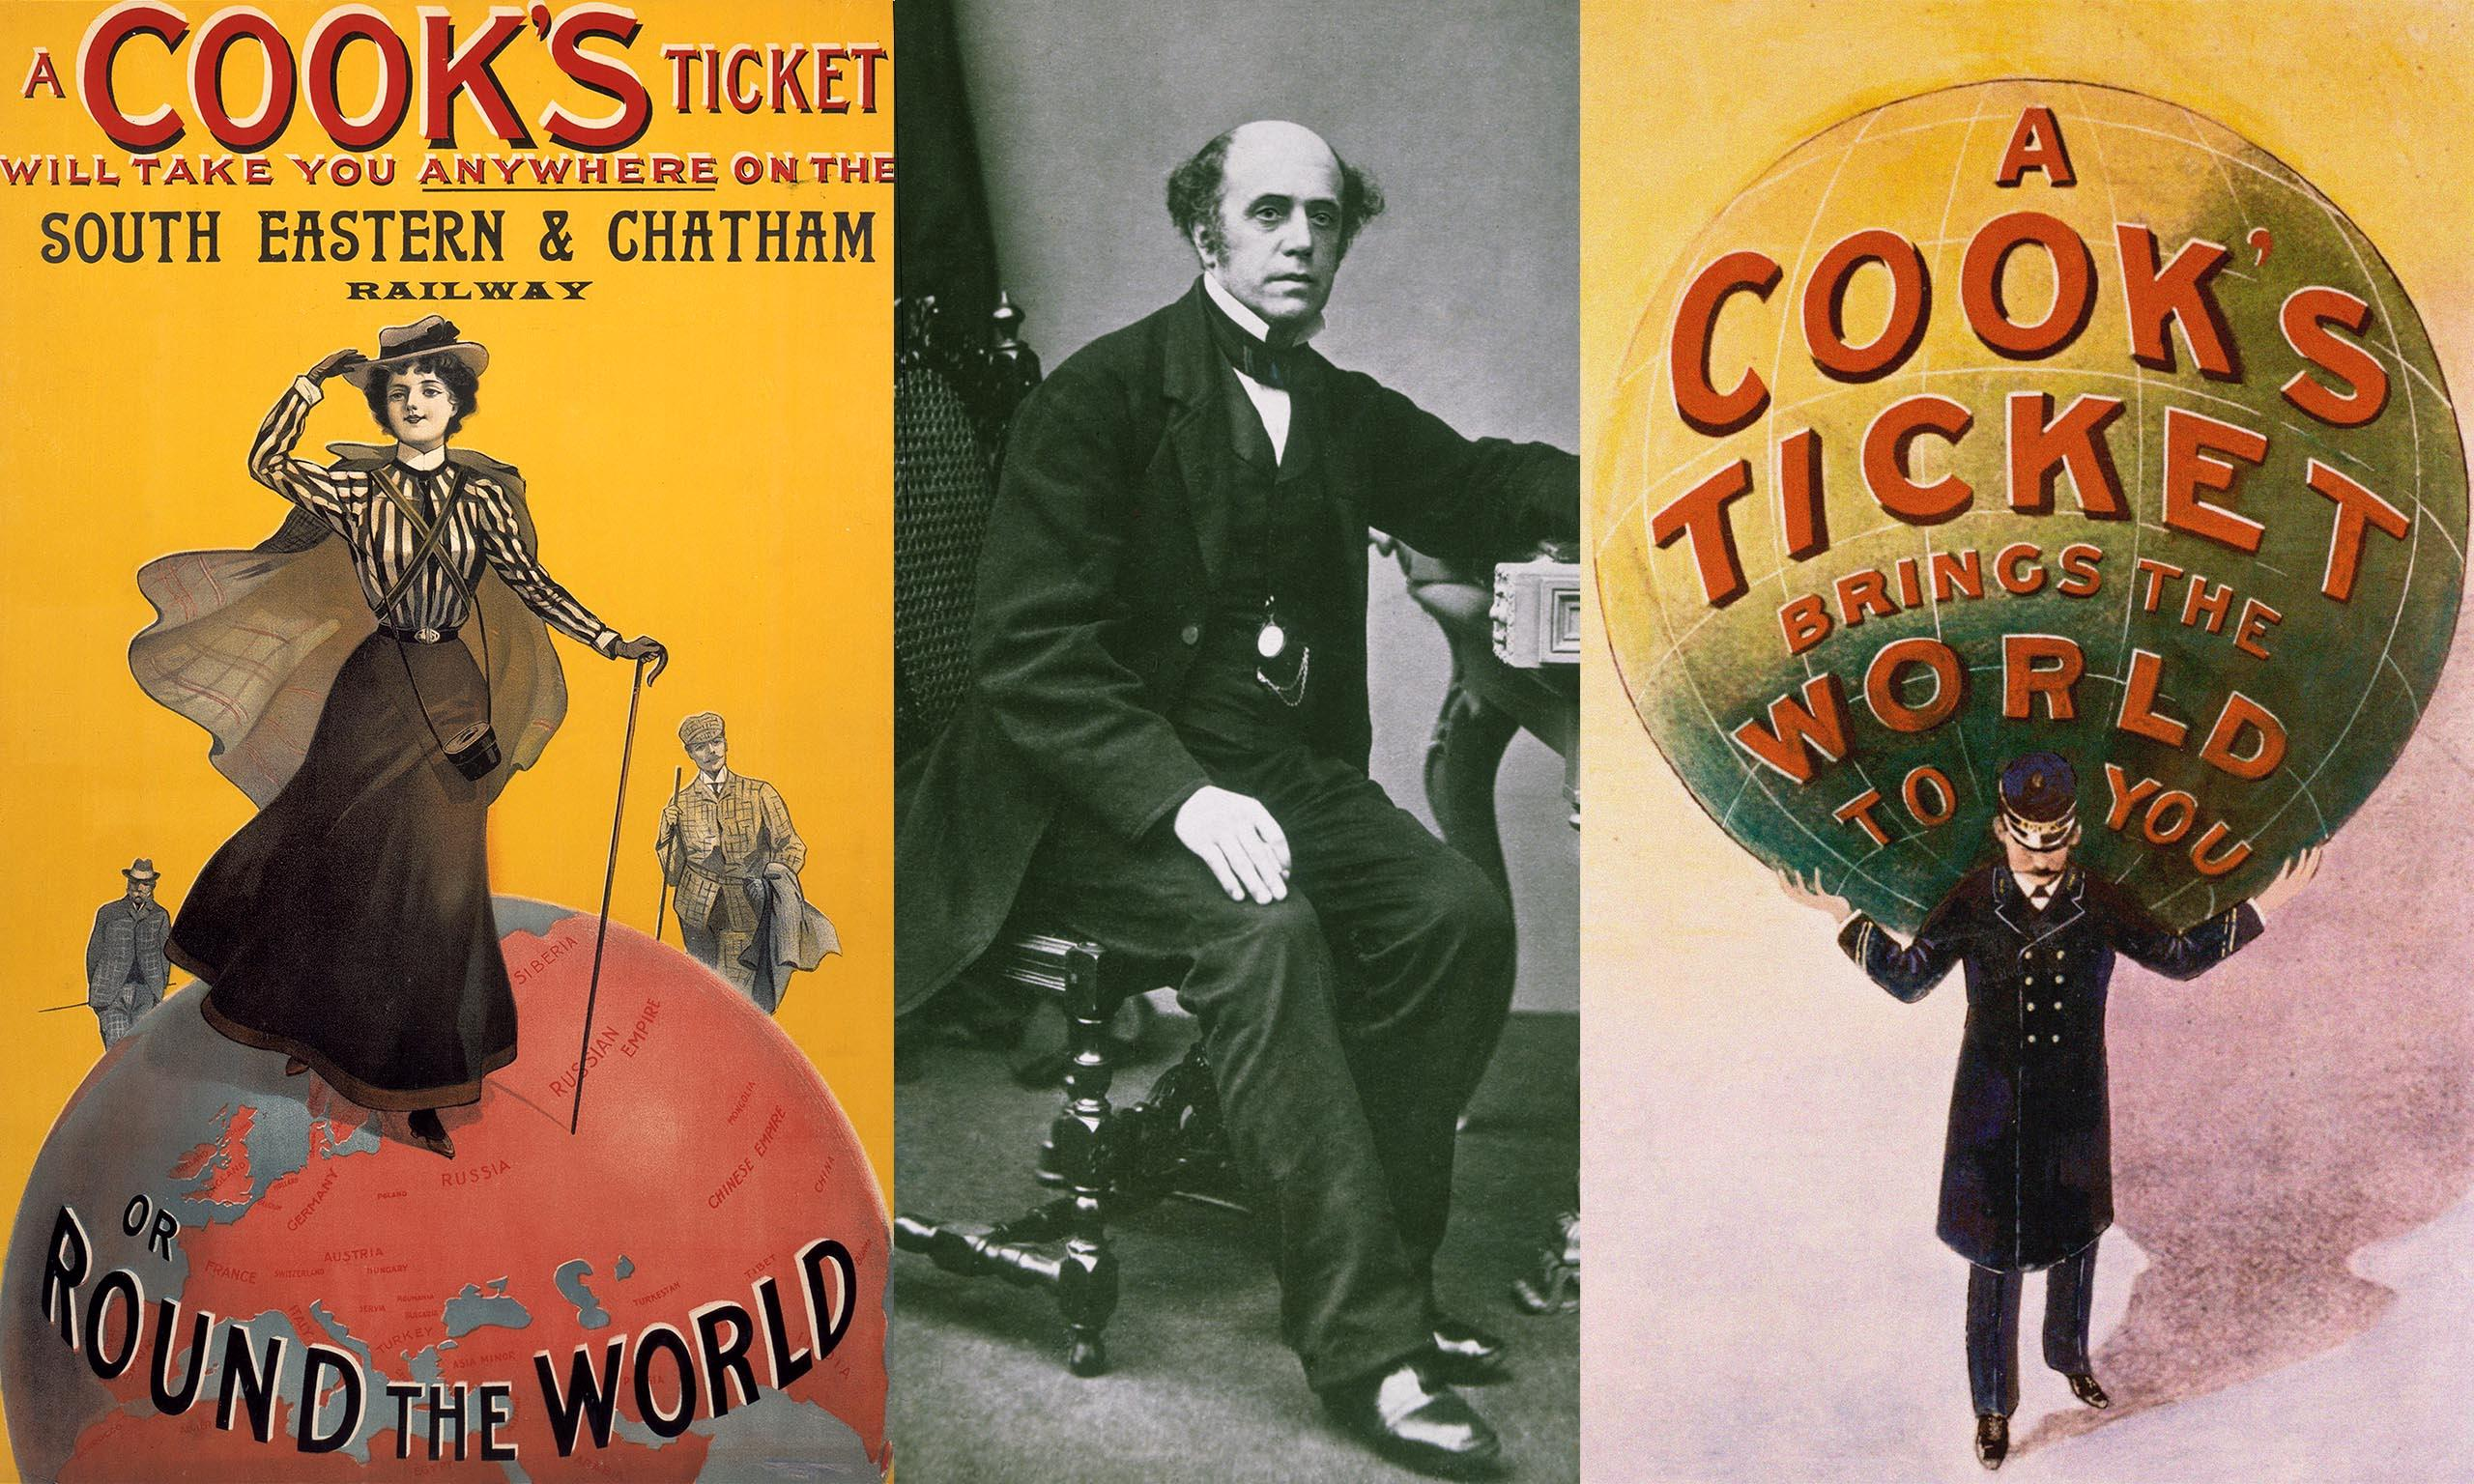 Temperance tours to inclusive packages: a history of Thomas Cook